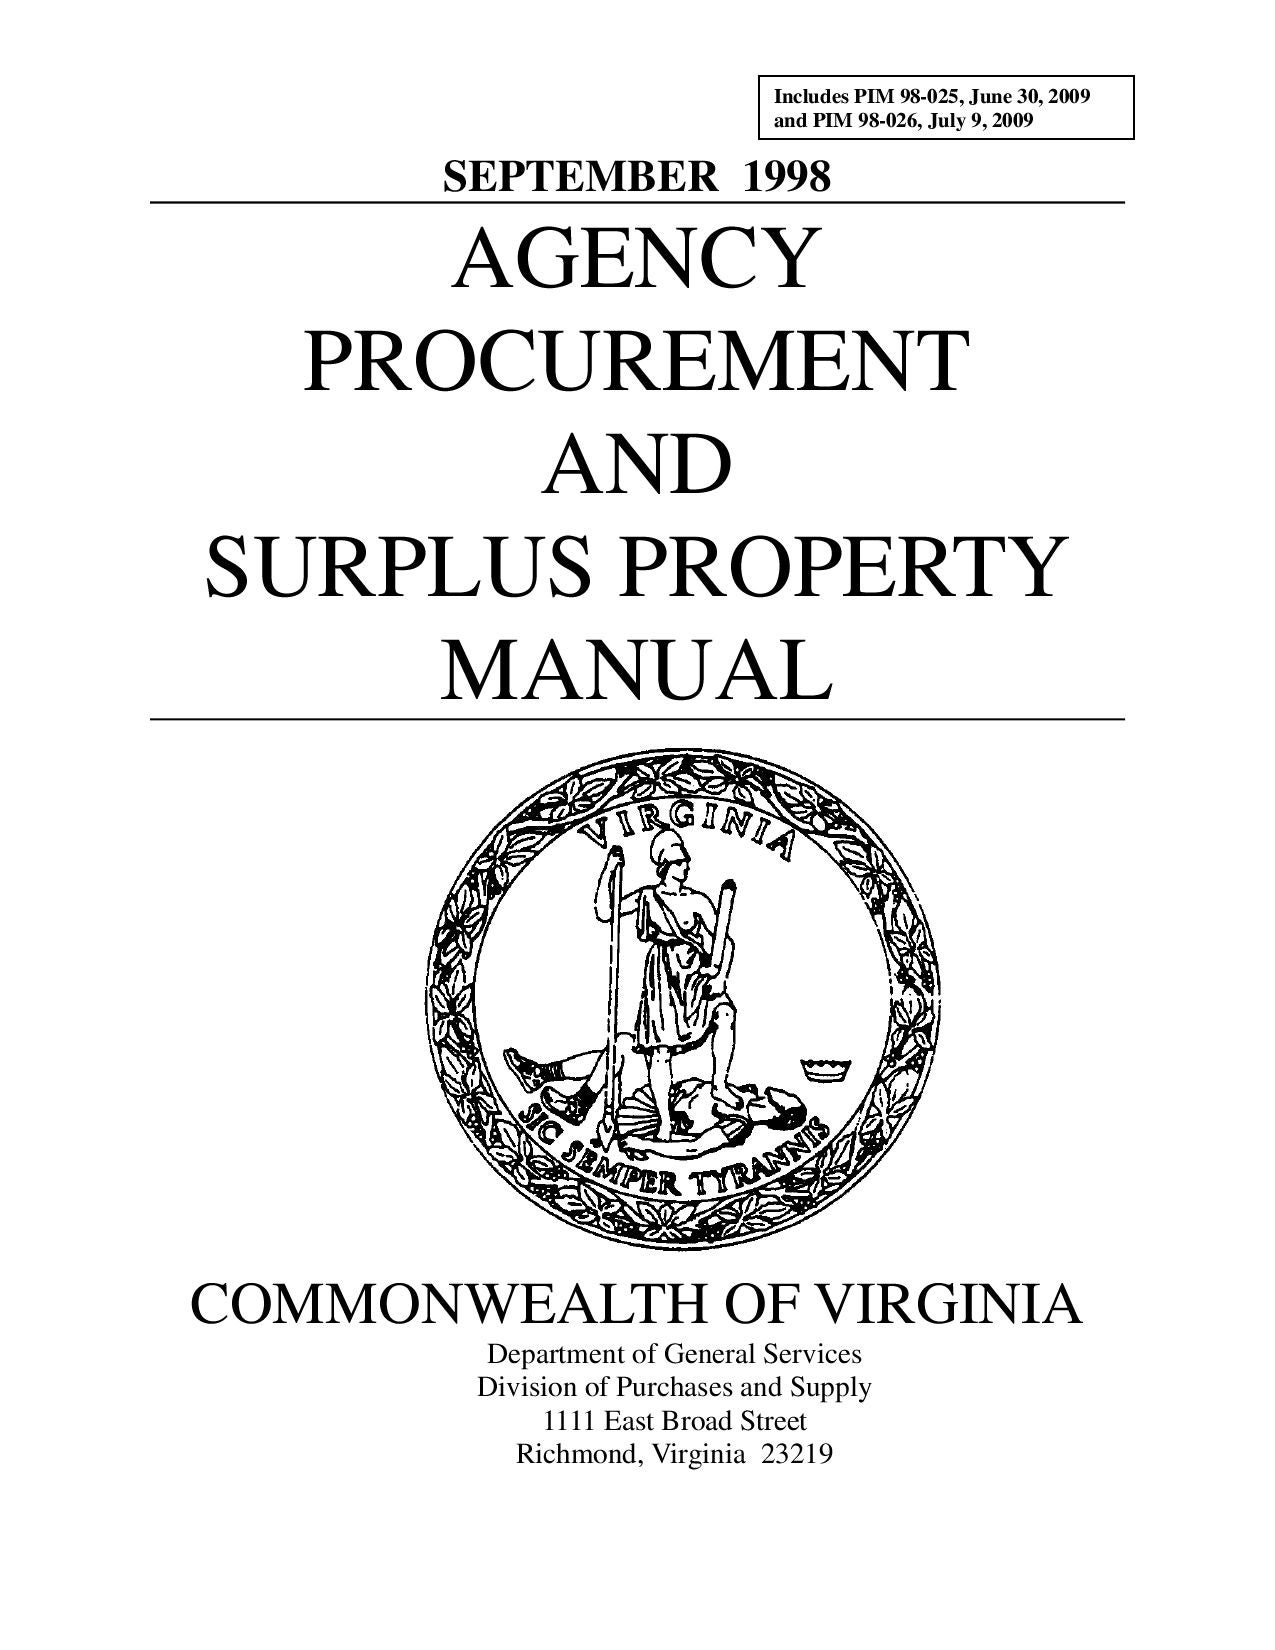 AGENCY PROCUREMENT AND SURPLUS PROPERTY MANUAL by David